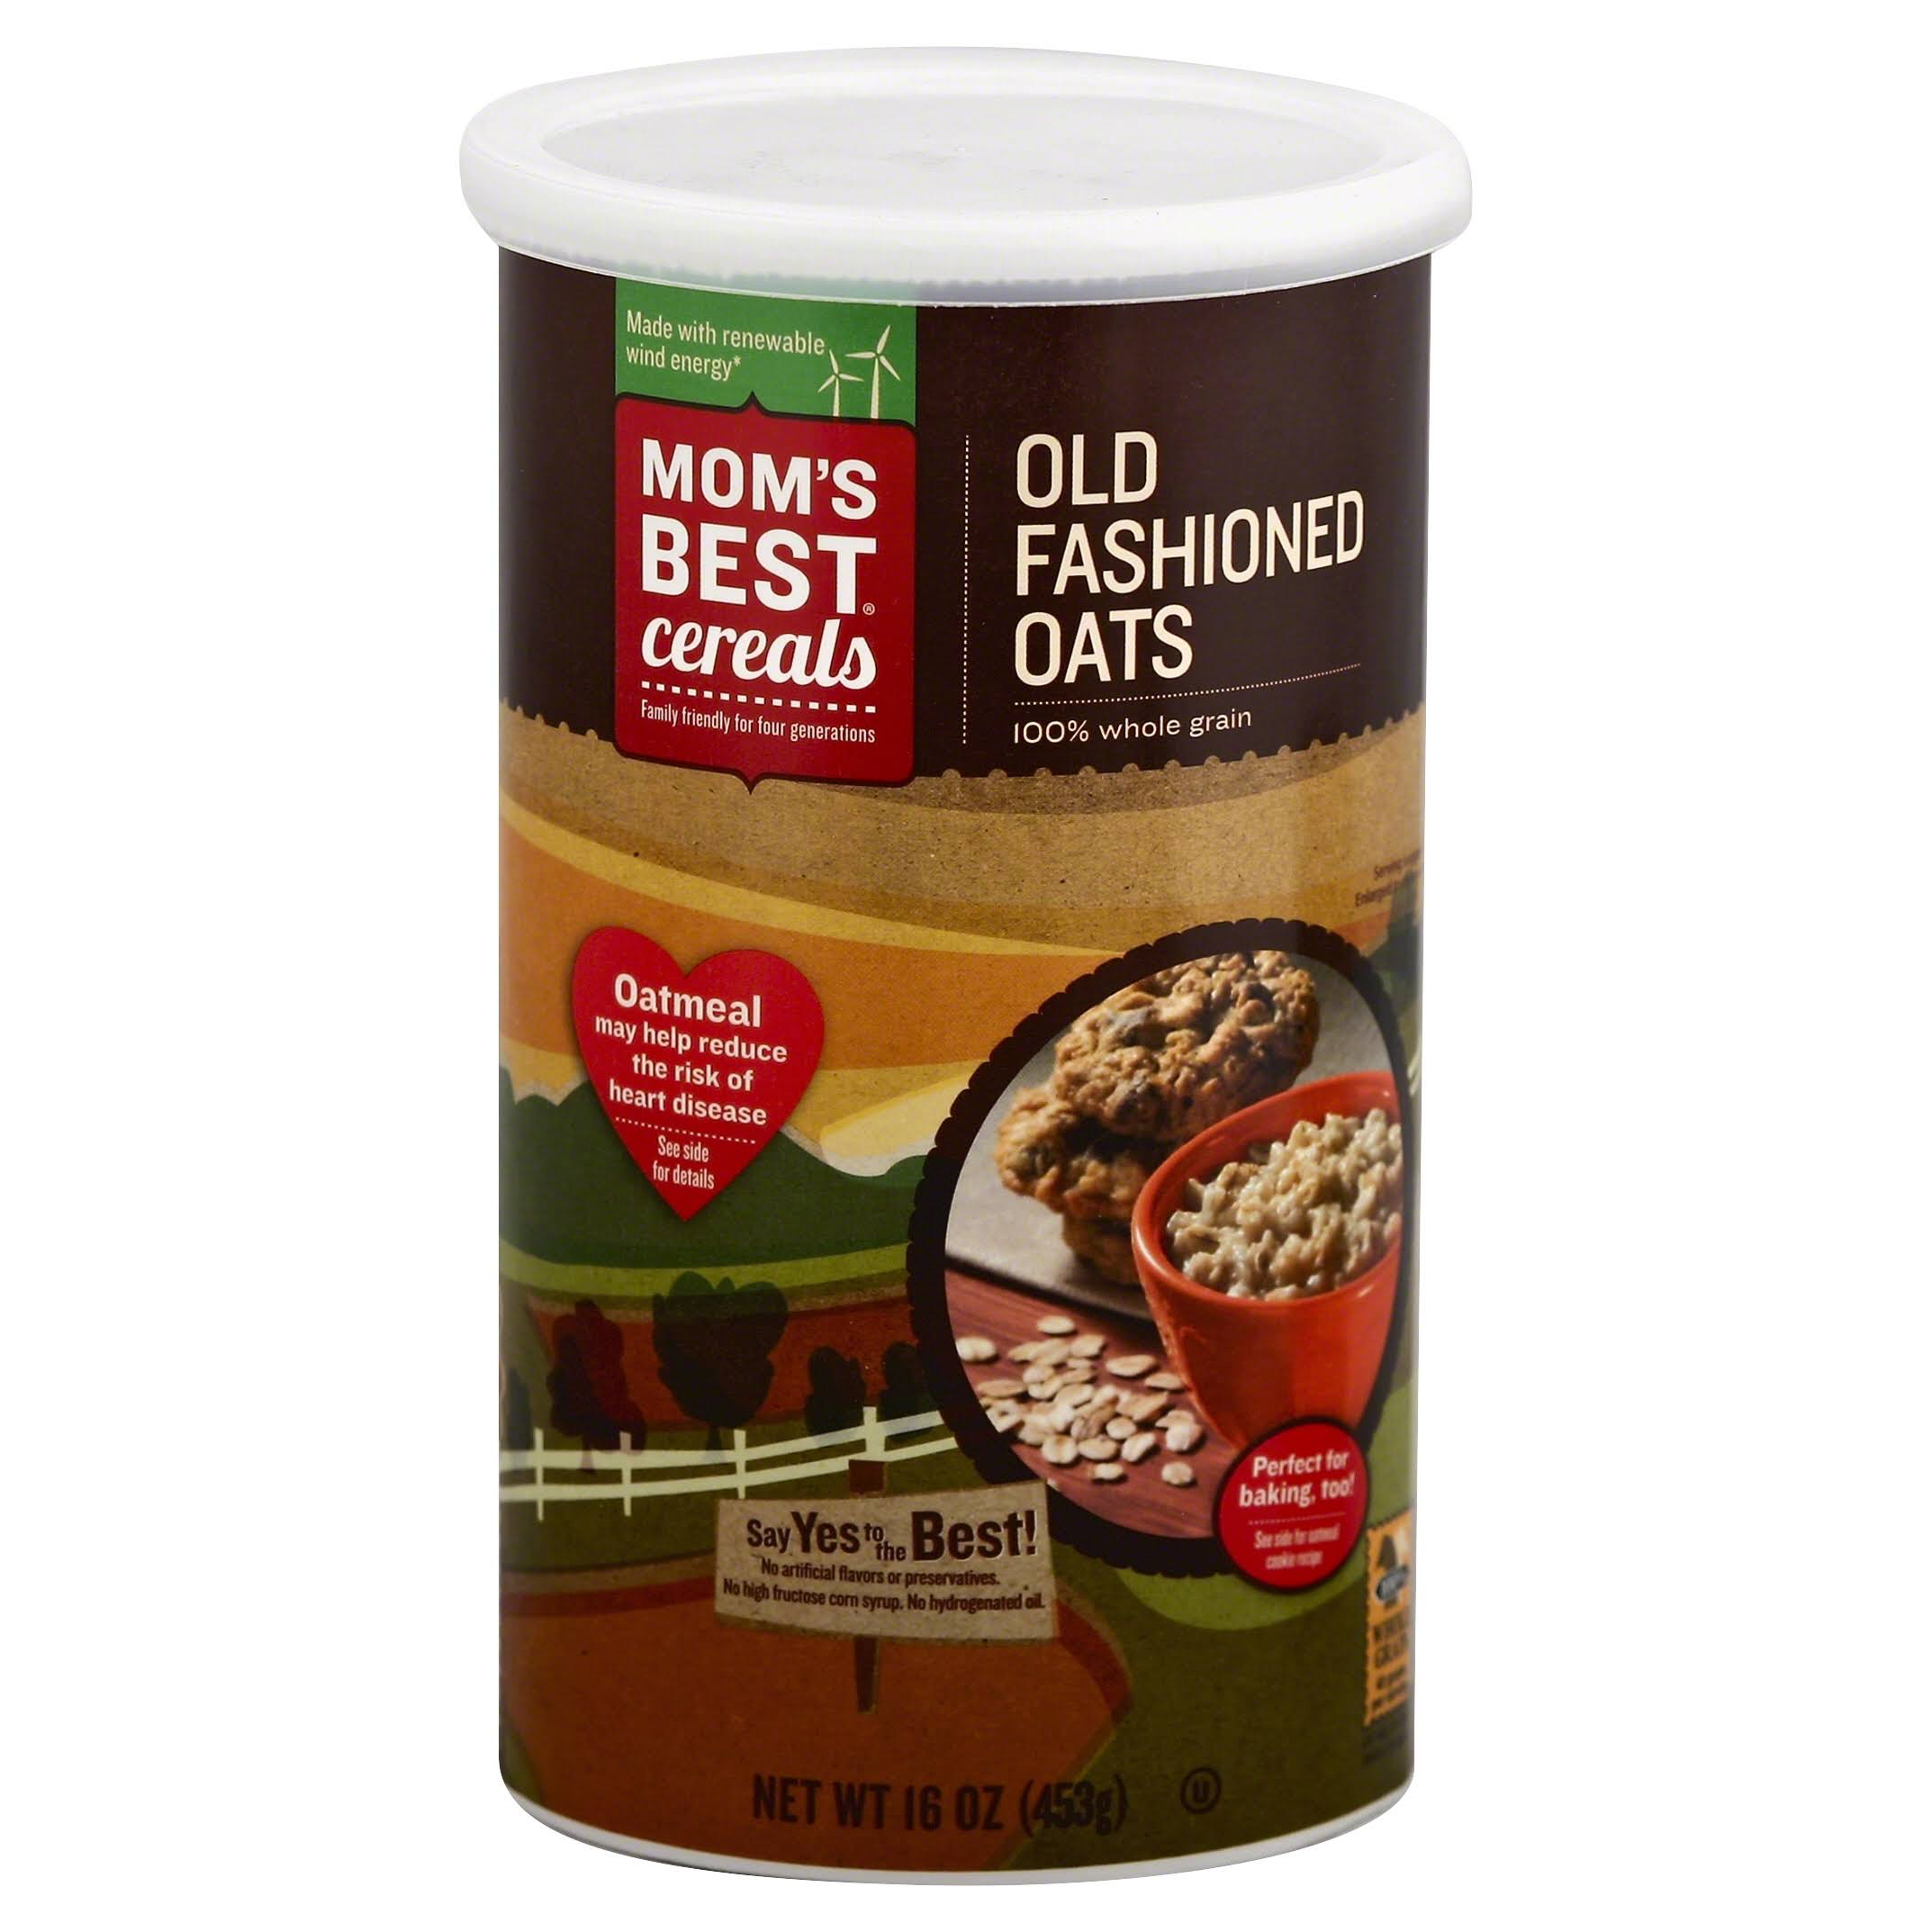 Moms Best Oatmeal, Old Fashioned Oats - 16 oz